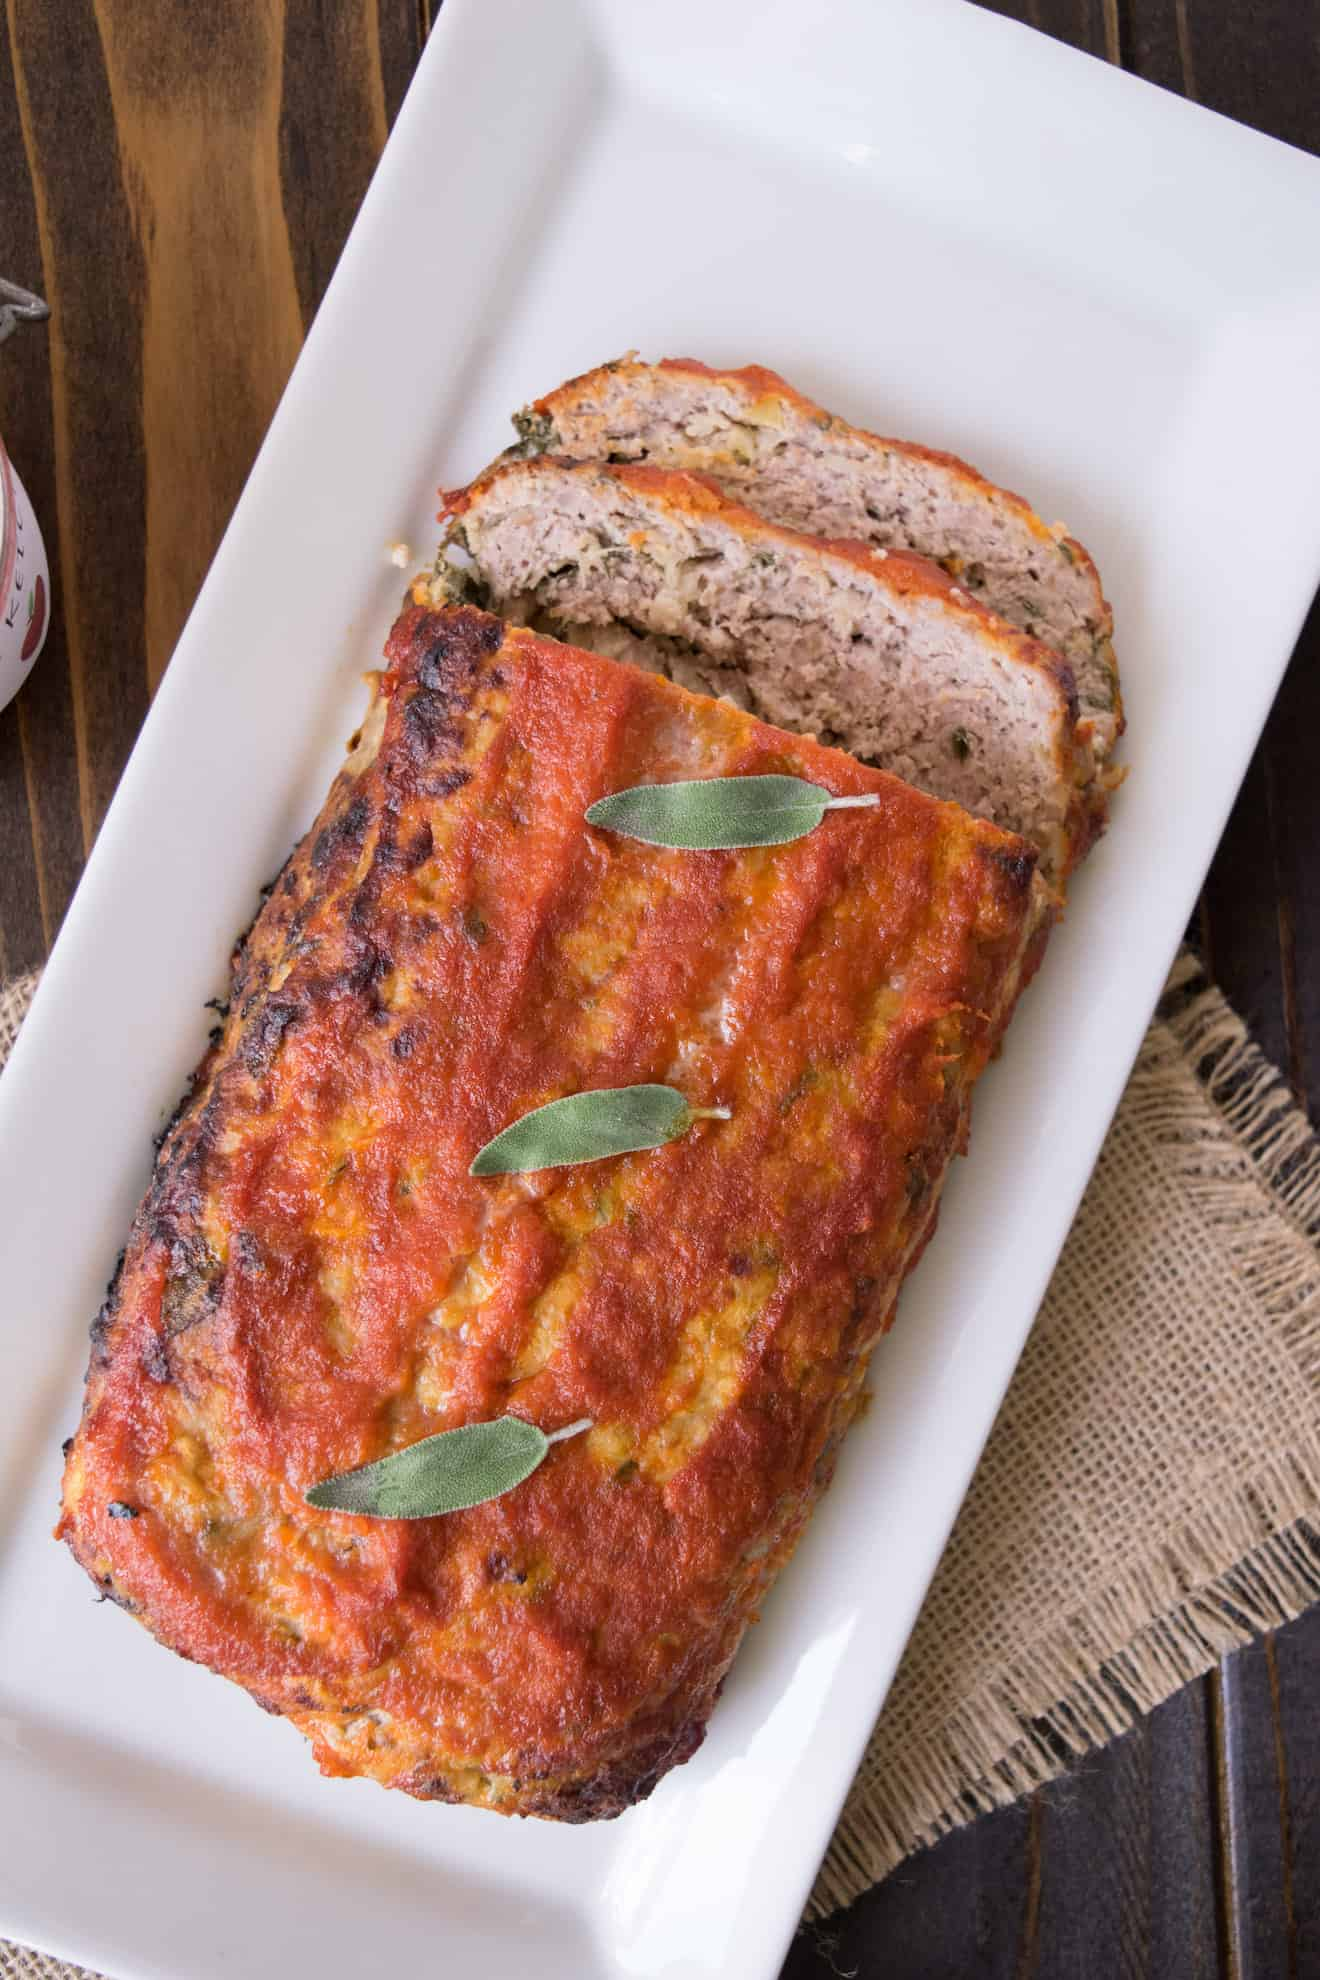 Pork apple and sage meatloaf with some slices on a serving plate